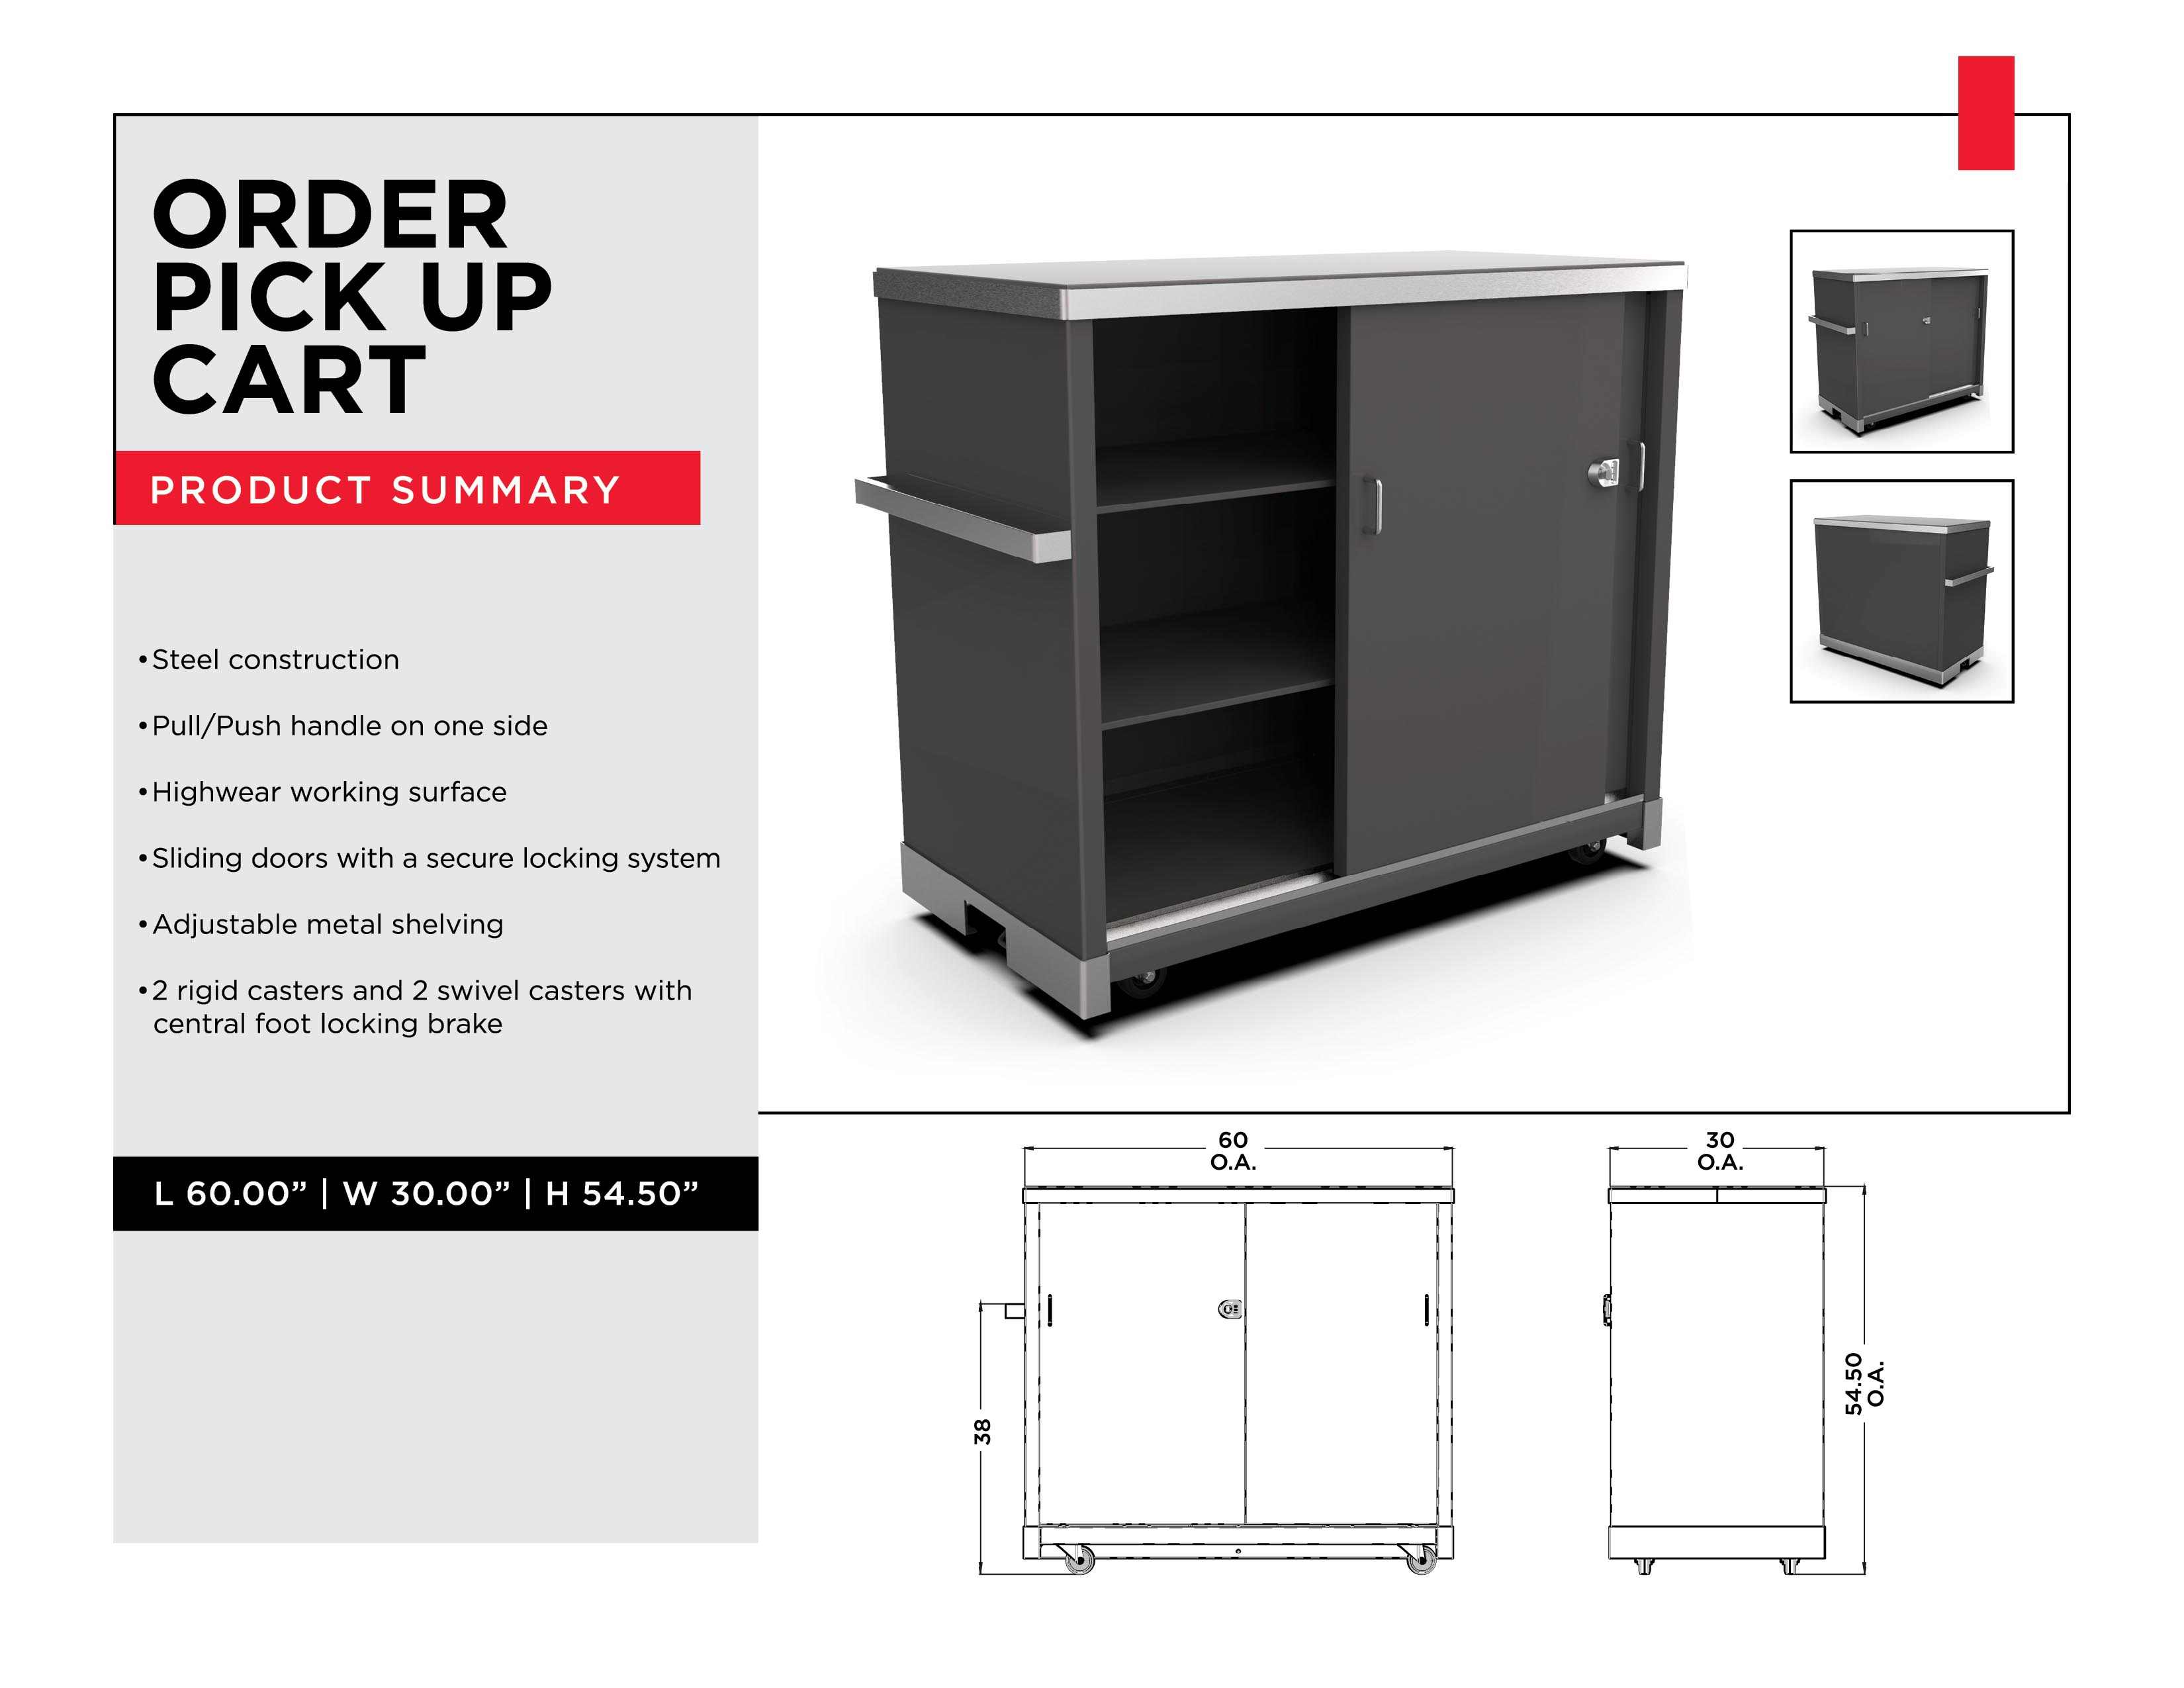 Retail Display Solutions: Order Pick Up Cart